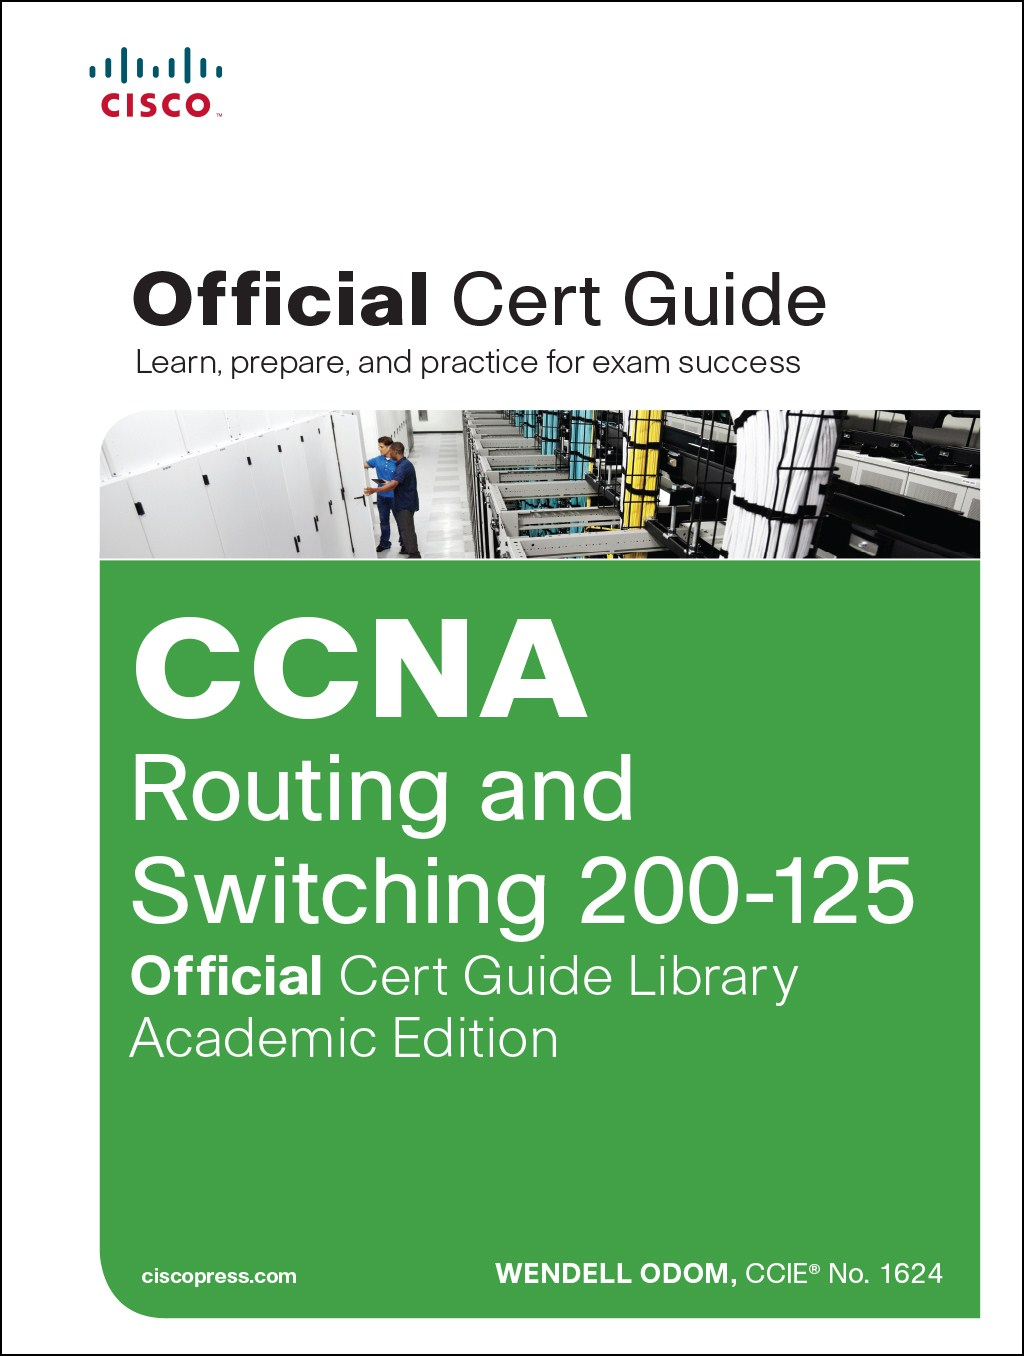 CCNA Routing and Switching 200-125 Official Cert Guide Library, Academic Edition